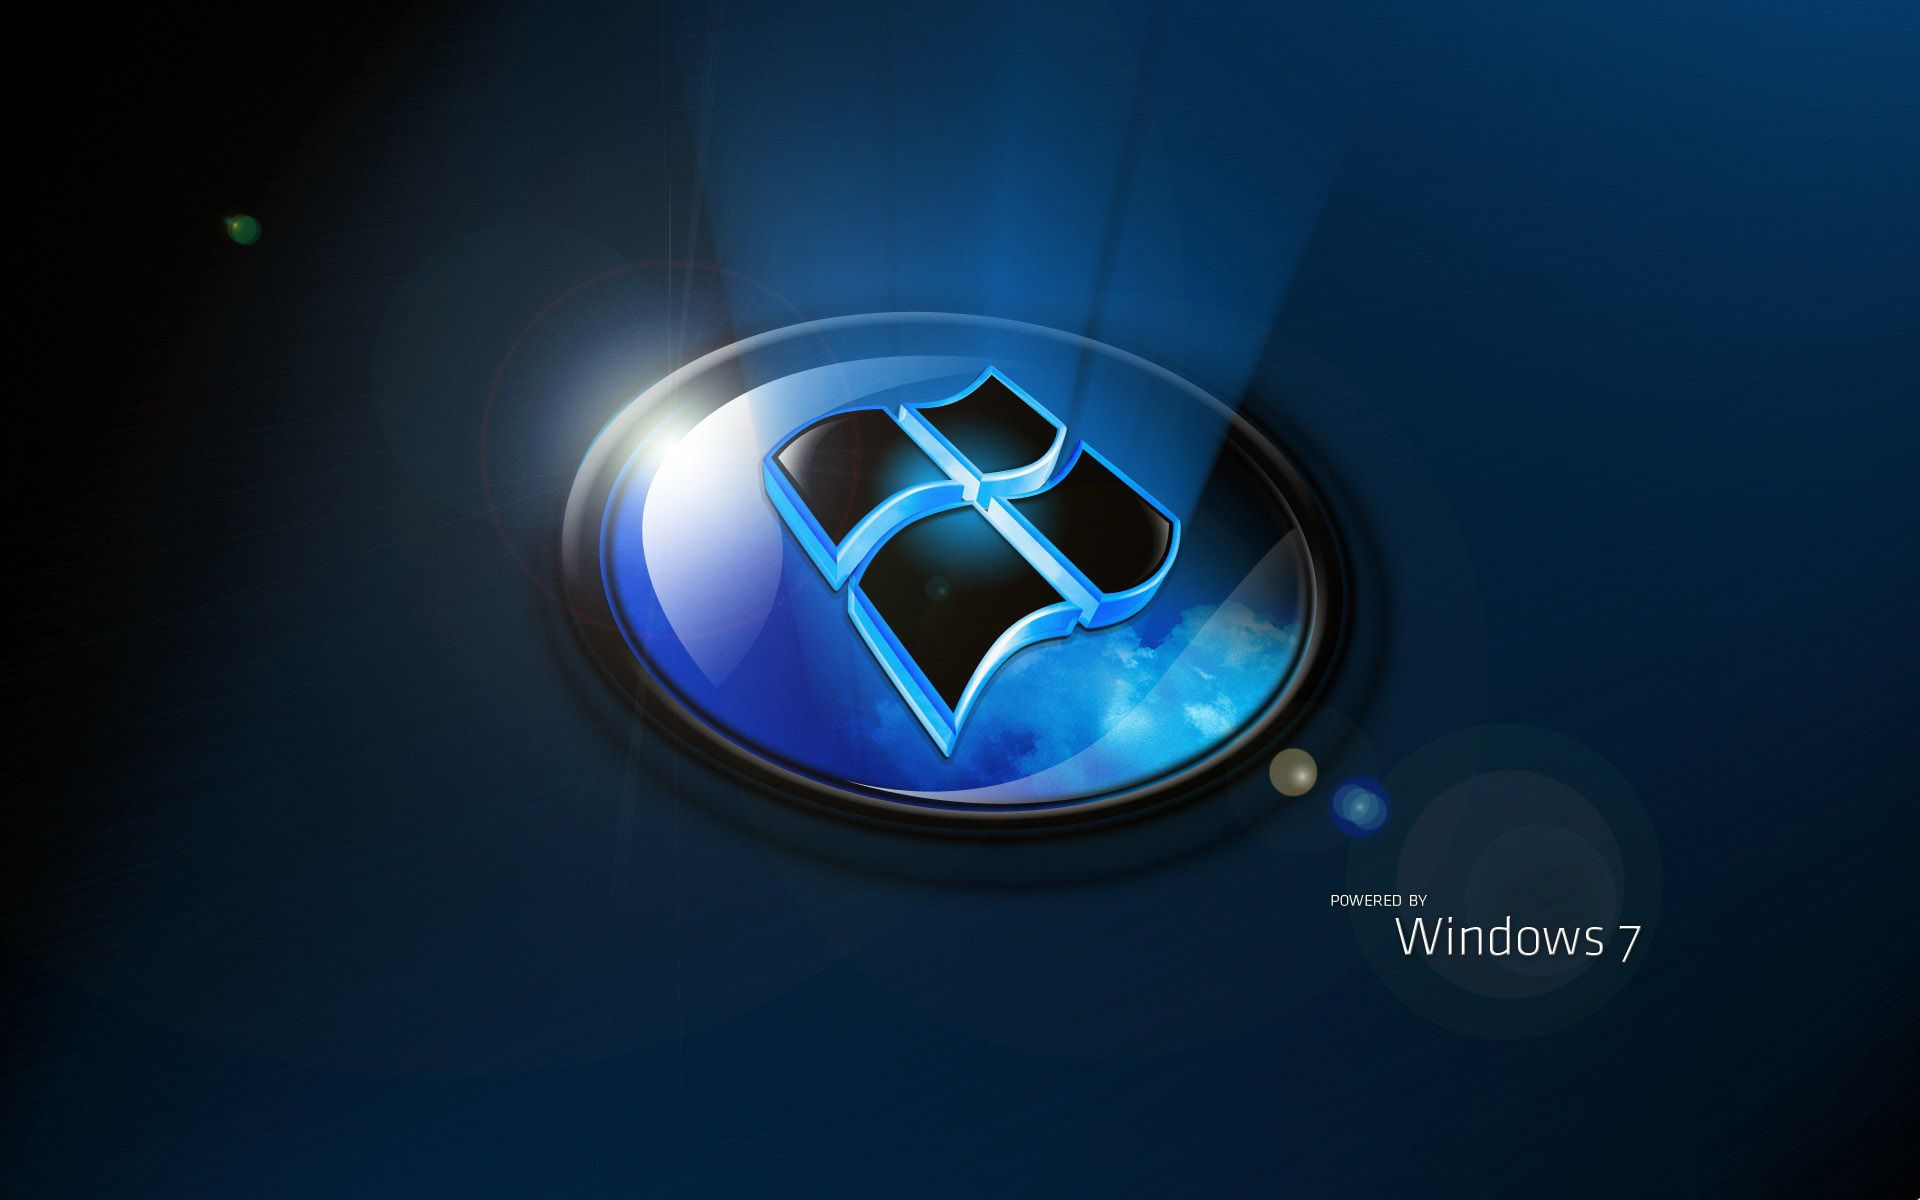 Desktop Wallpaper Hd D Windows